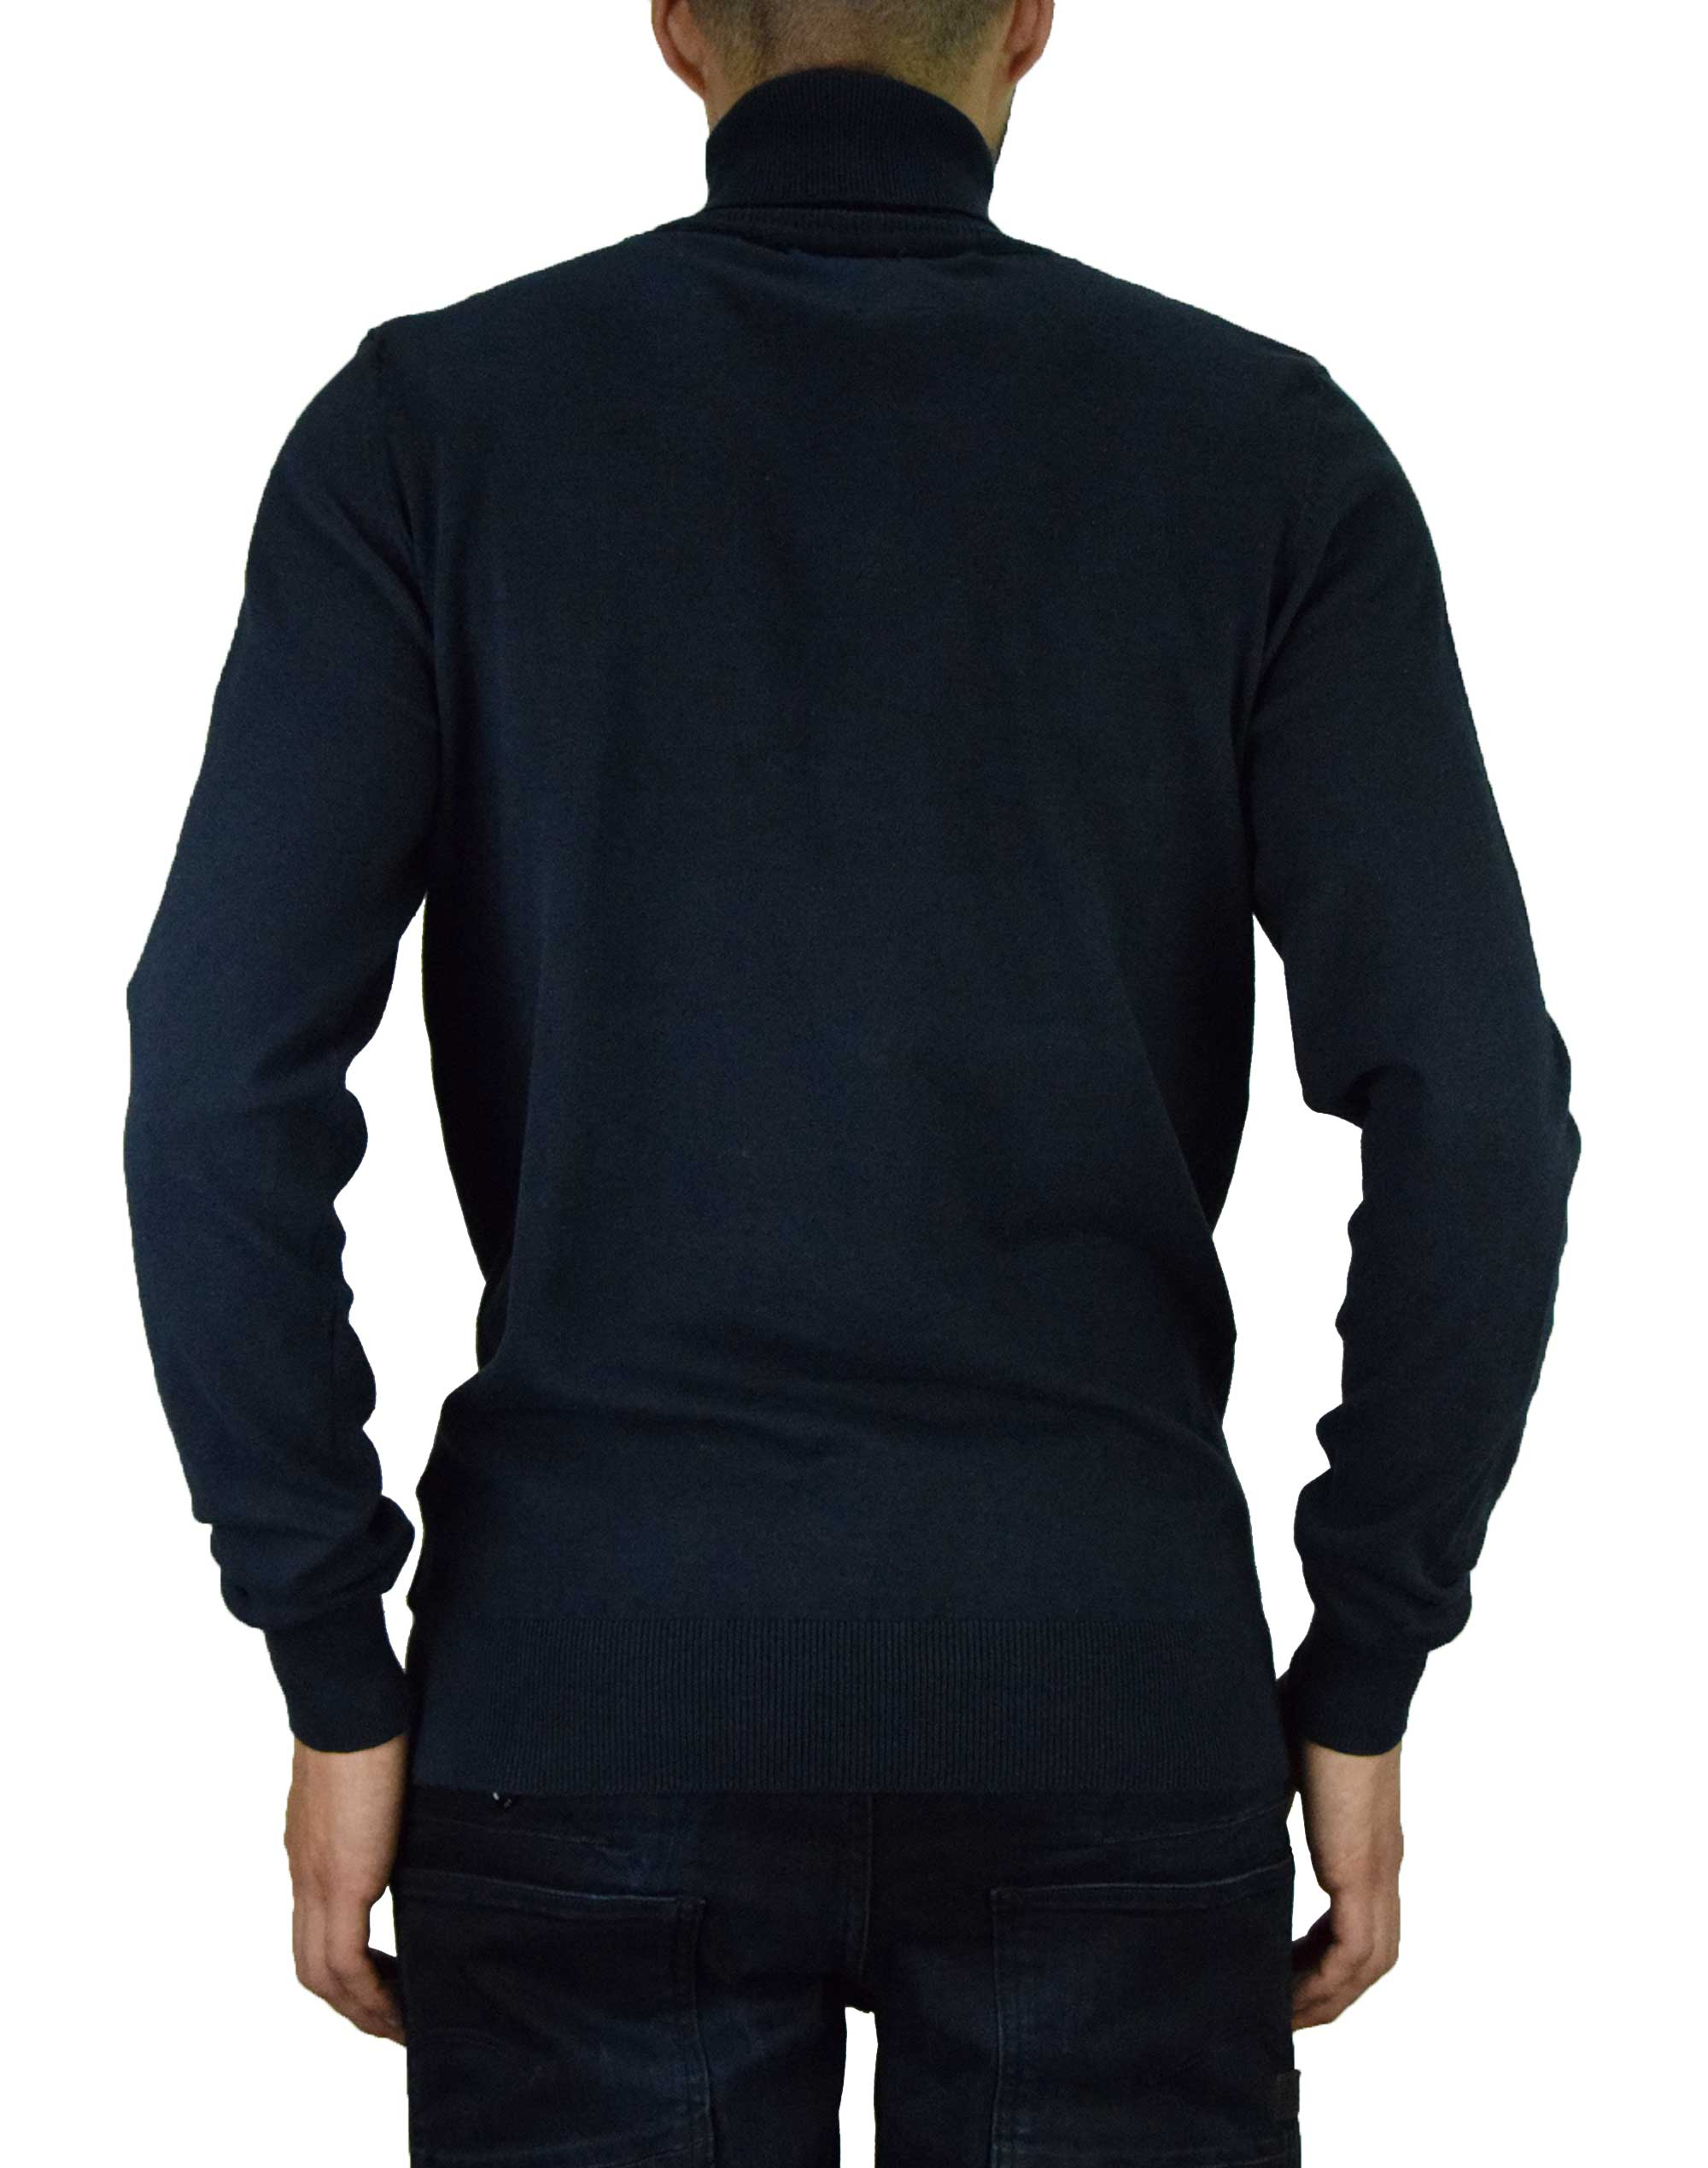 Biston Mens Sweater (42-206-010) Navy